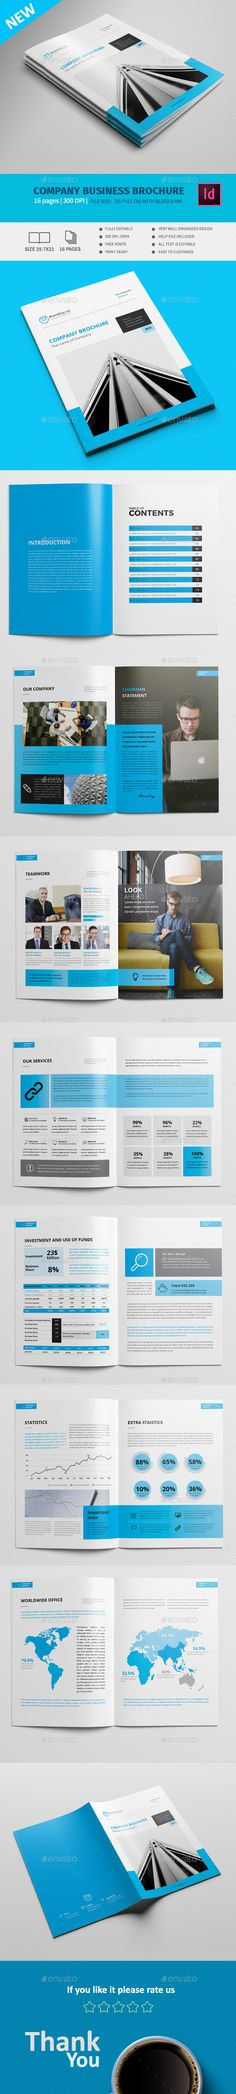 Magazine Design Template InDesign INDD - 24 Pages A4  US Letter